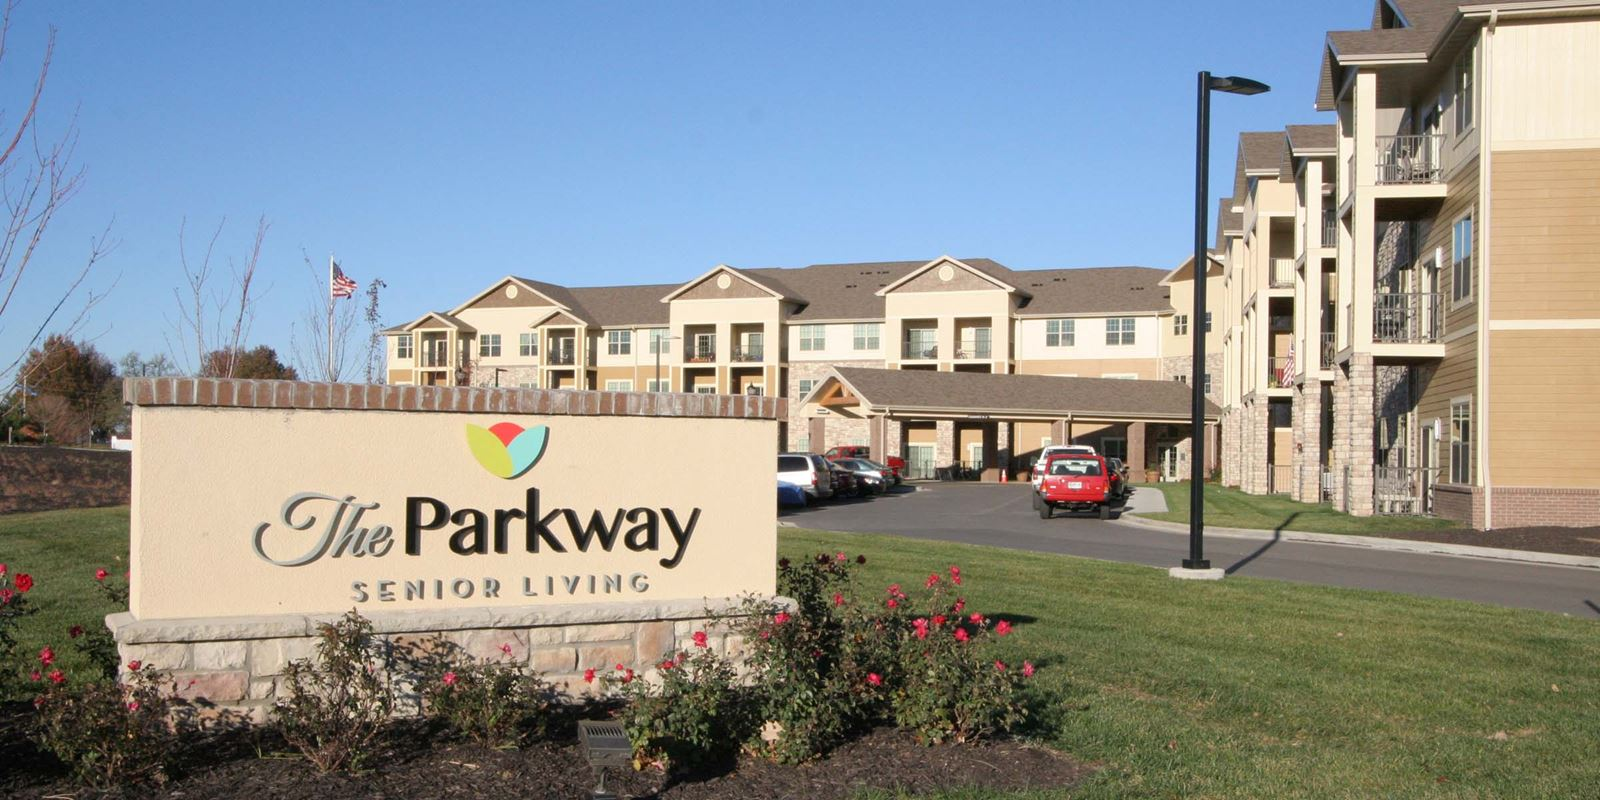 stark city Highway 60 rv park, stark city: see traveler reviews, 2 candid photos, and great deals for highway 60 rv park, ranked #1 of 2 specialty lodging in stark city and rated 5 of 5 at tripadvisor.